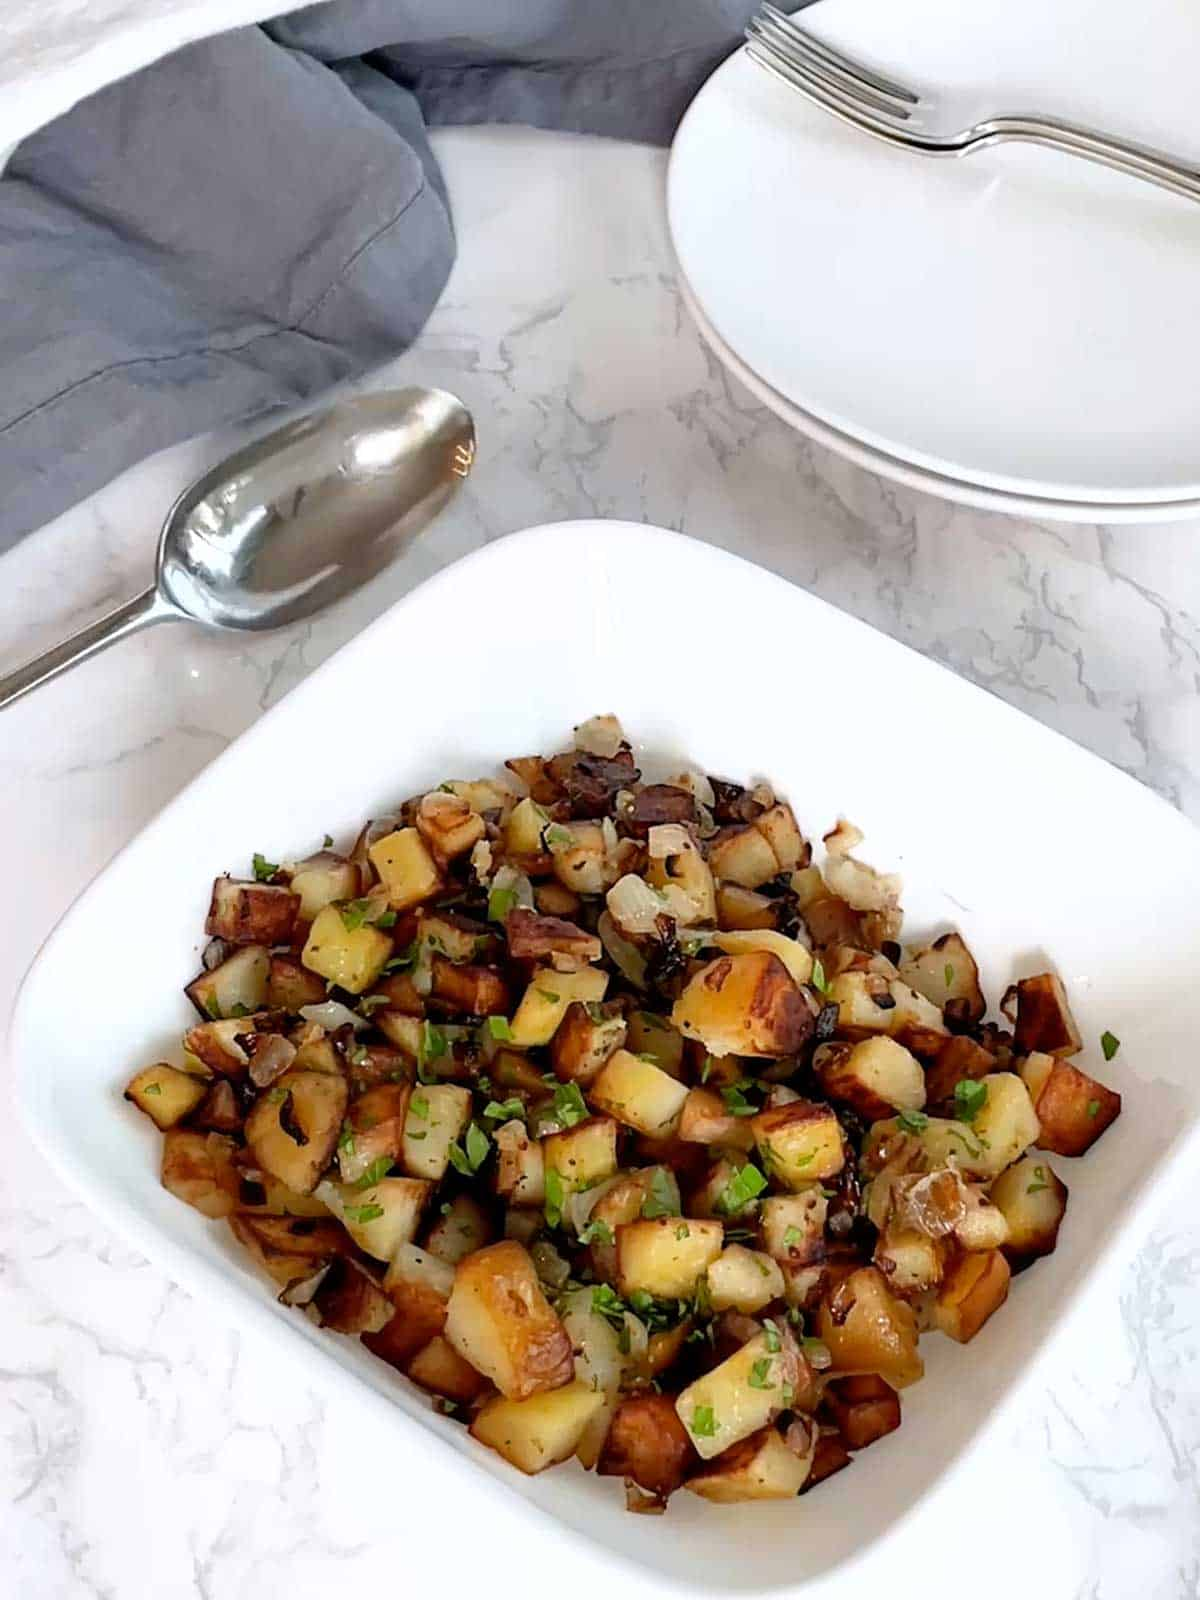 Fried Potatoes and Onions